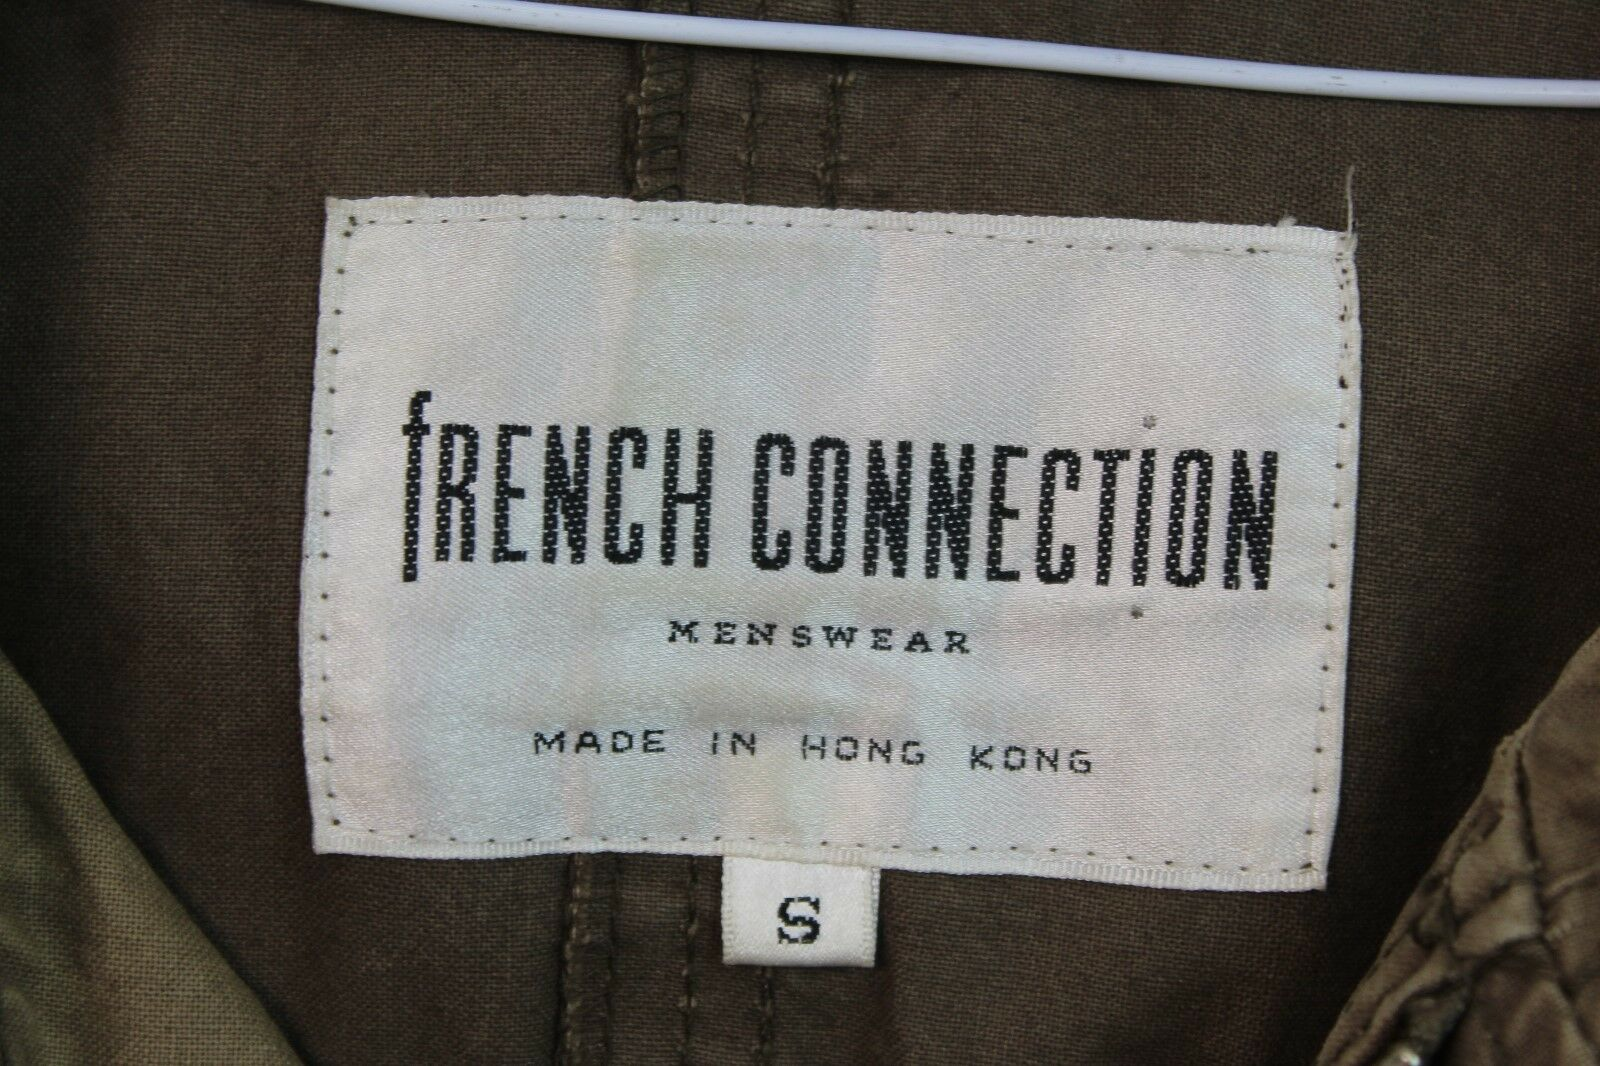 Homme S French Connection Manteau Marron Taille S Homme No.Y657 11/9 1f0634